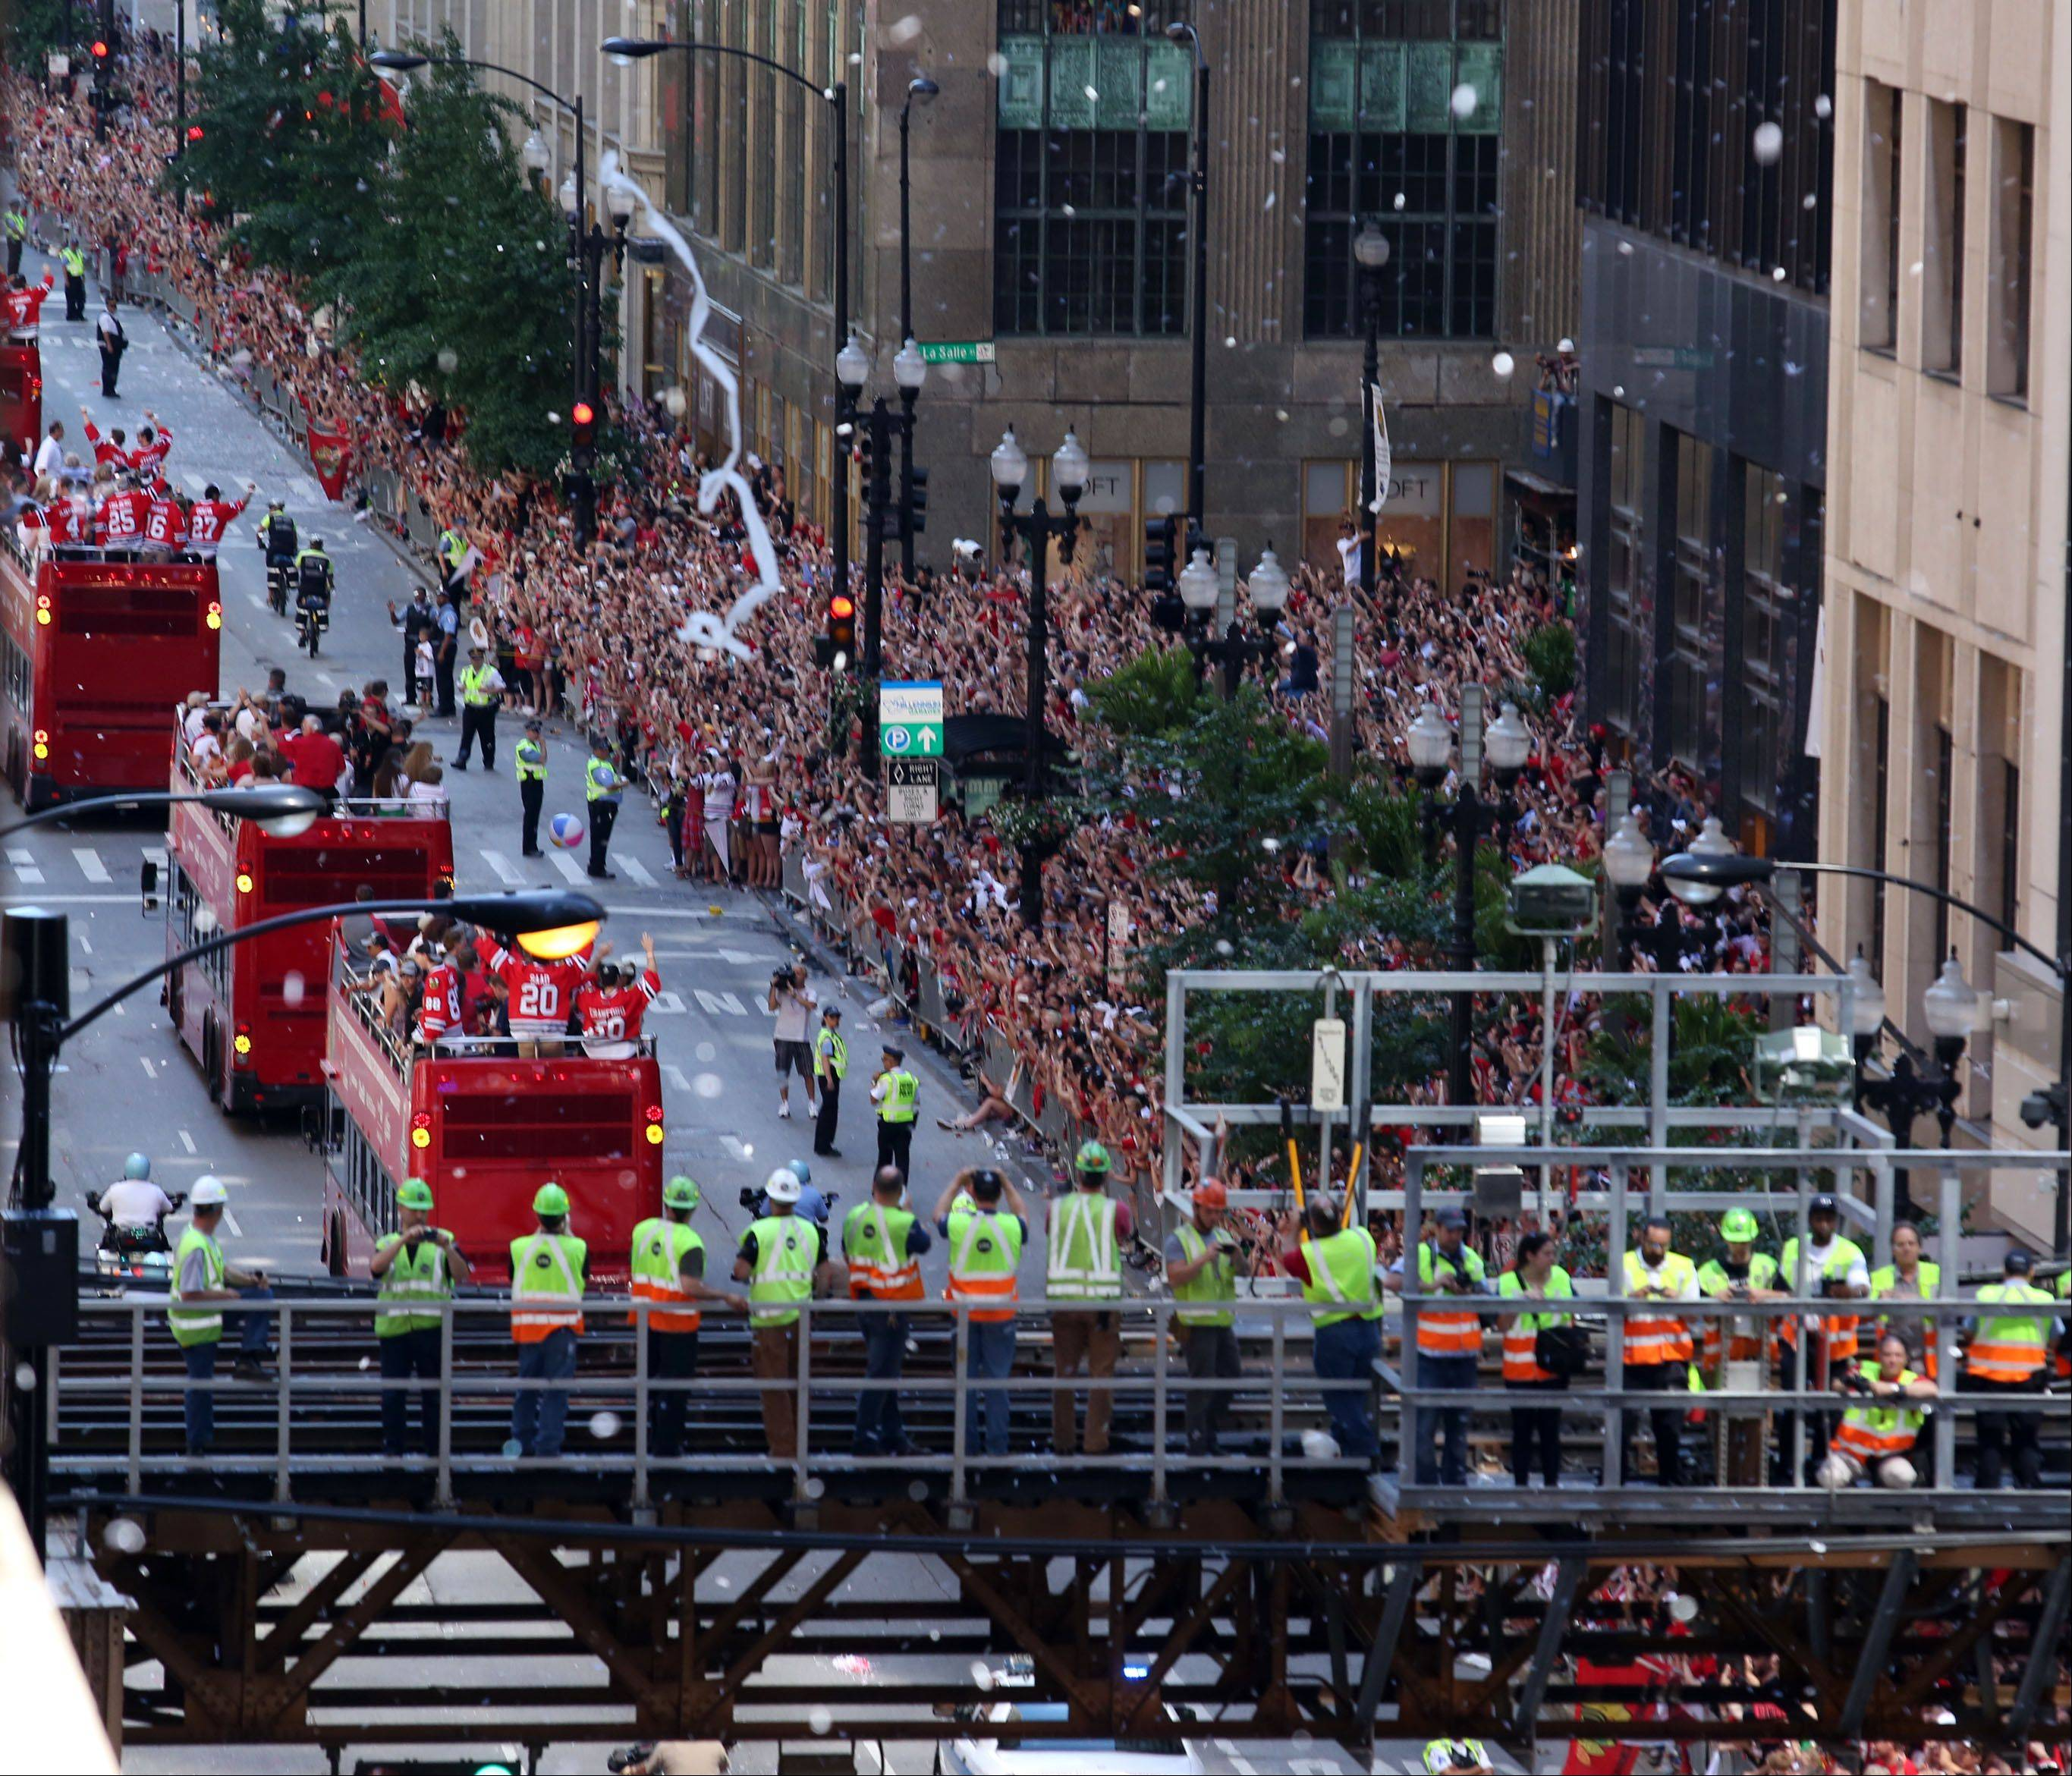 CTA workers get a high angle view of the Blackhawks parade from the transit tracks above Washington Street in Chicago on Friday.